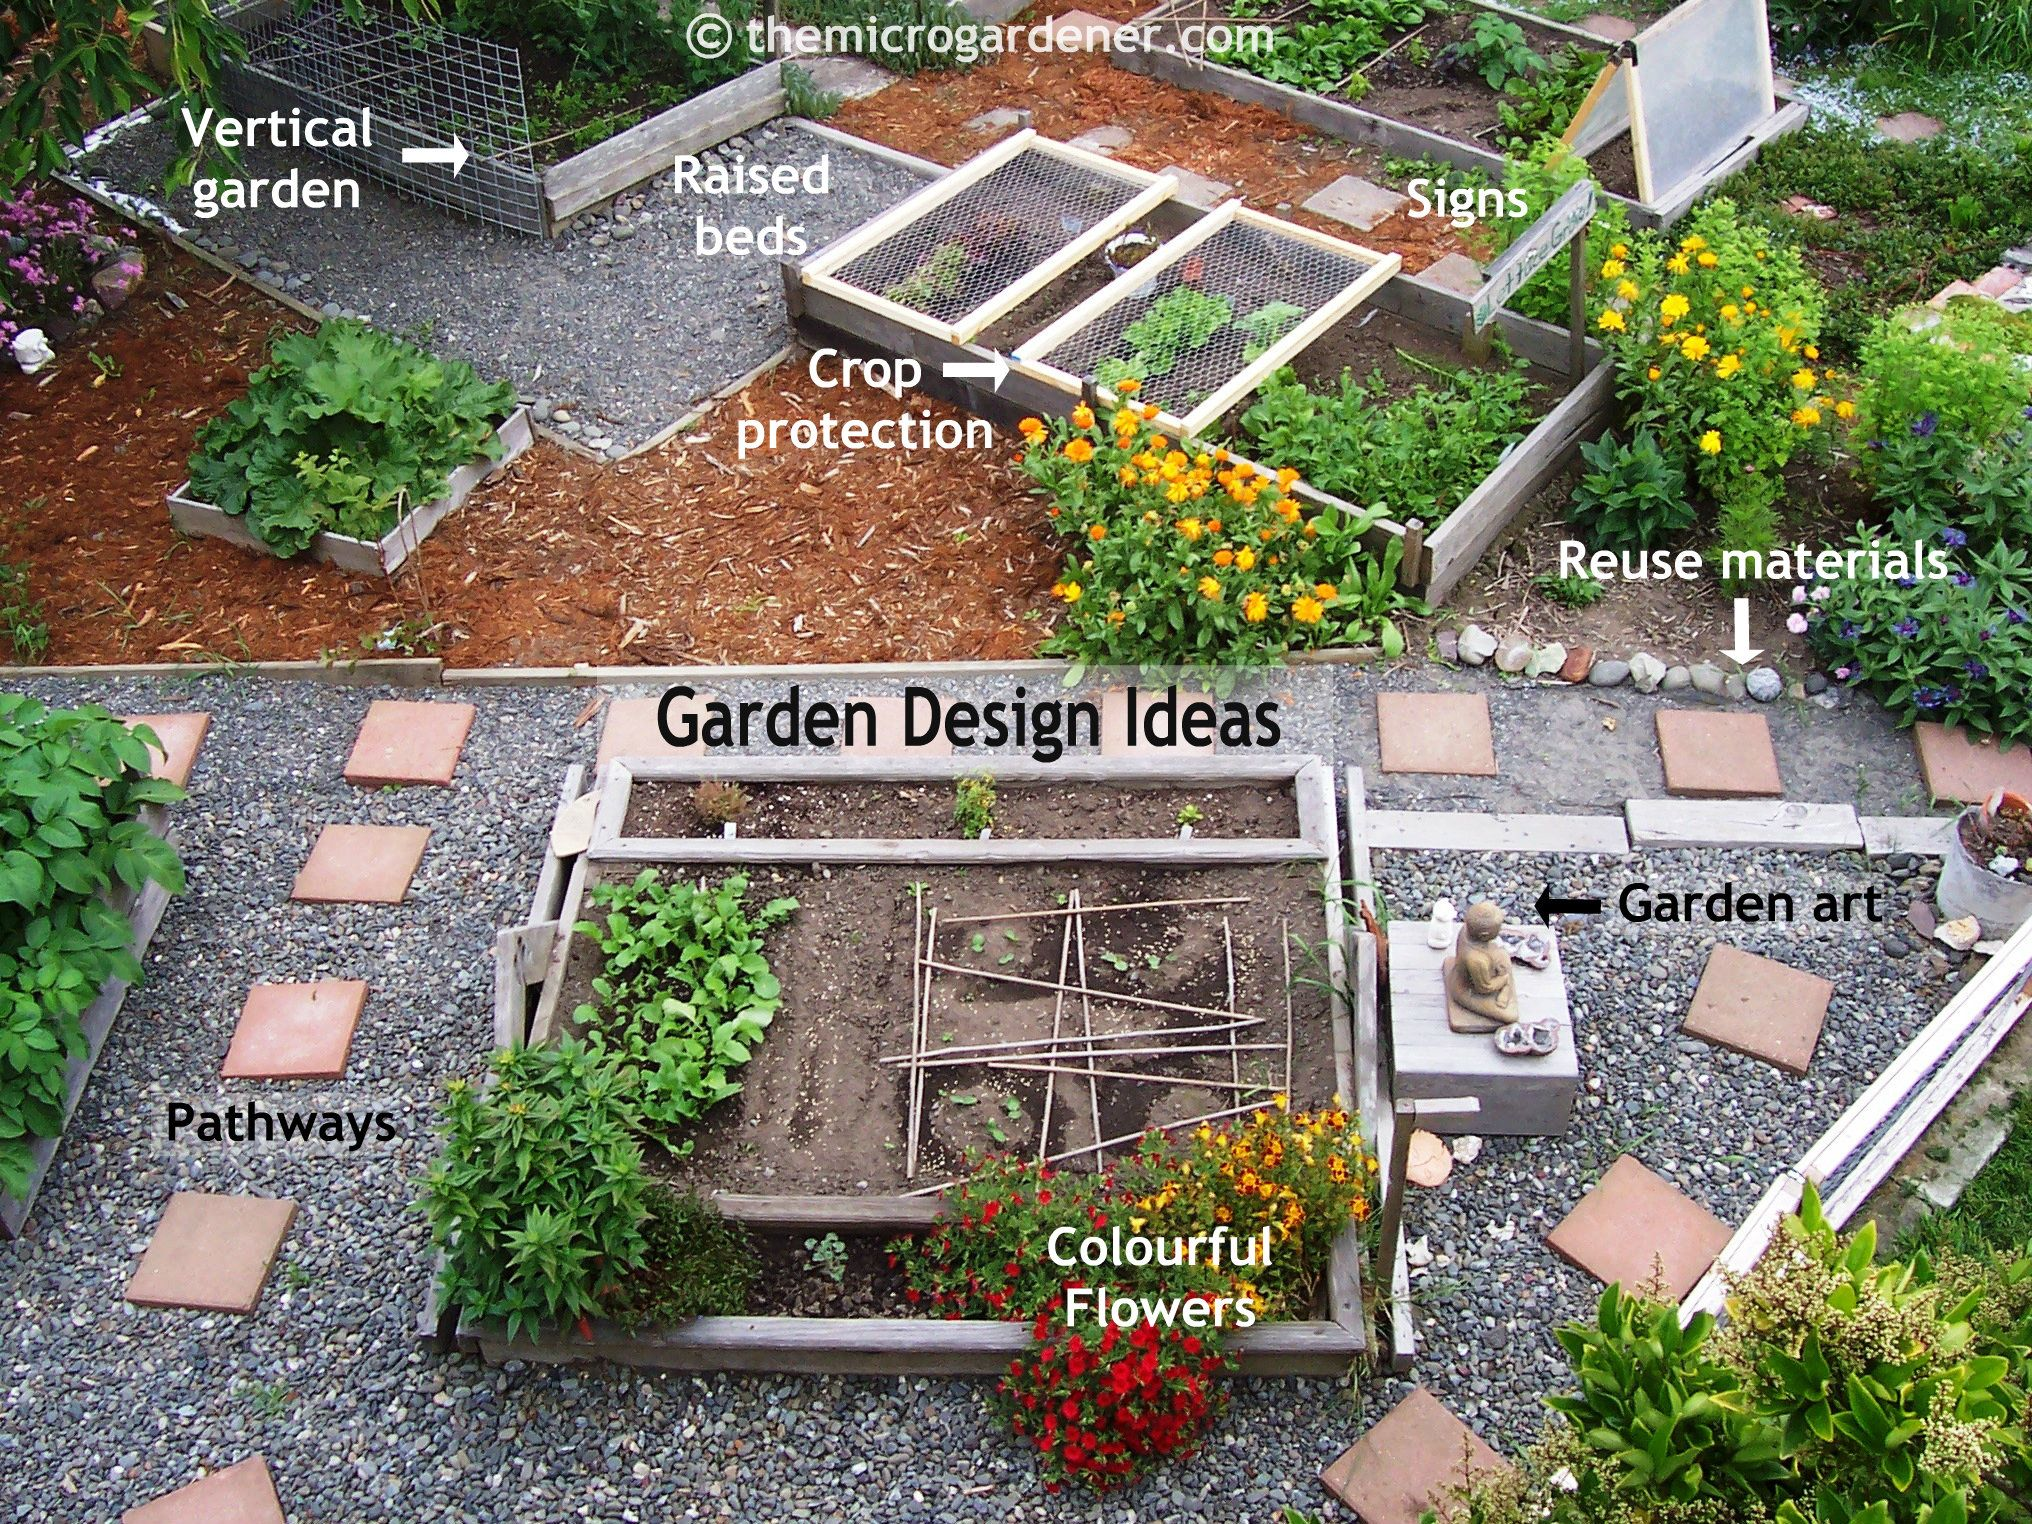 Small garden design ideas on pinterest vertical gardens for Ideas for a small vegetable garden design